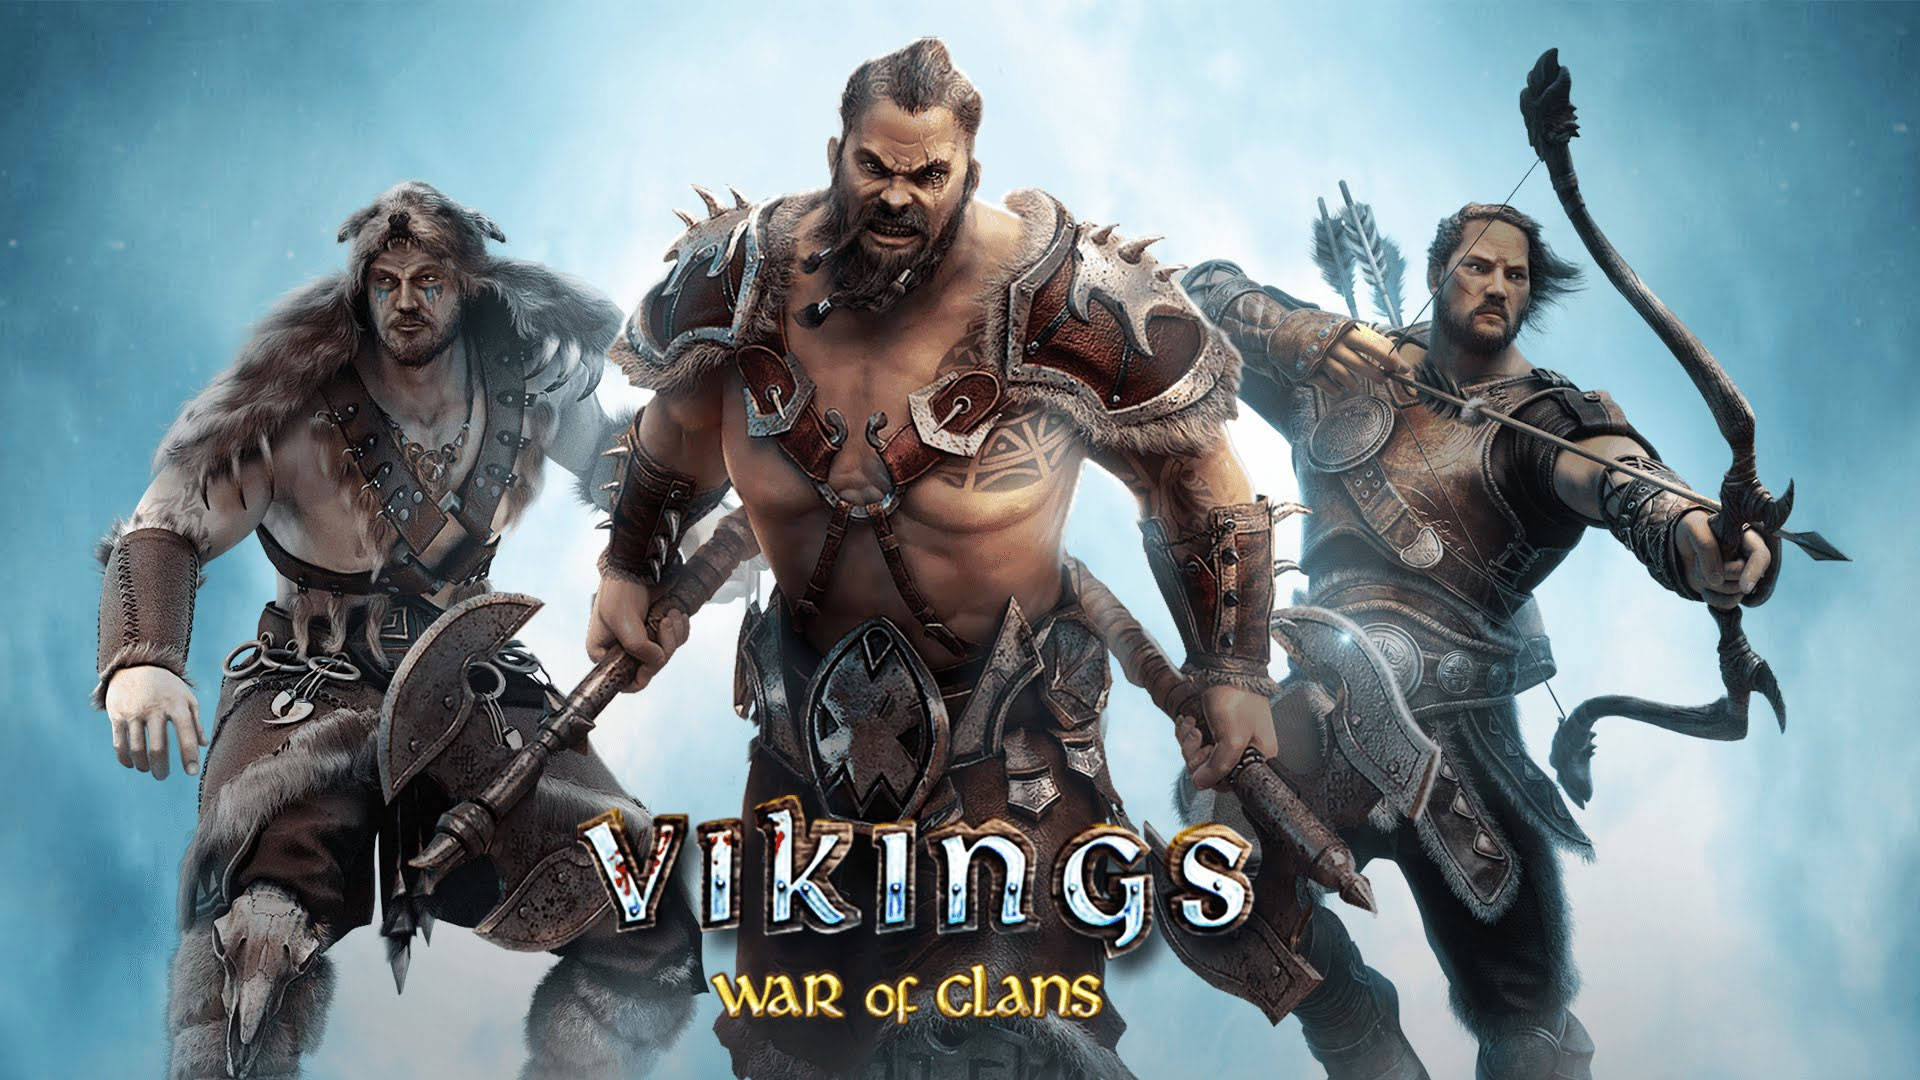 vikings war of clans test et avis du jeu par navigateur de strat gie sur blog jeu. Black Bedroom Furniture Sets. Home Design Ideas